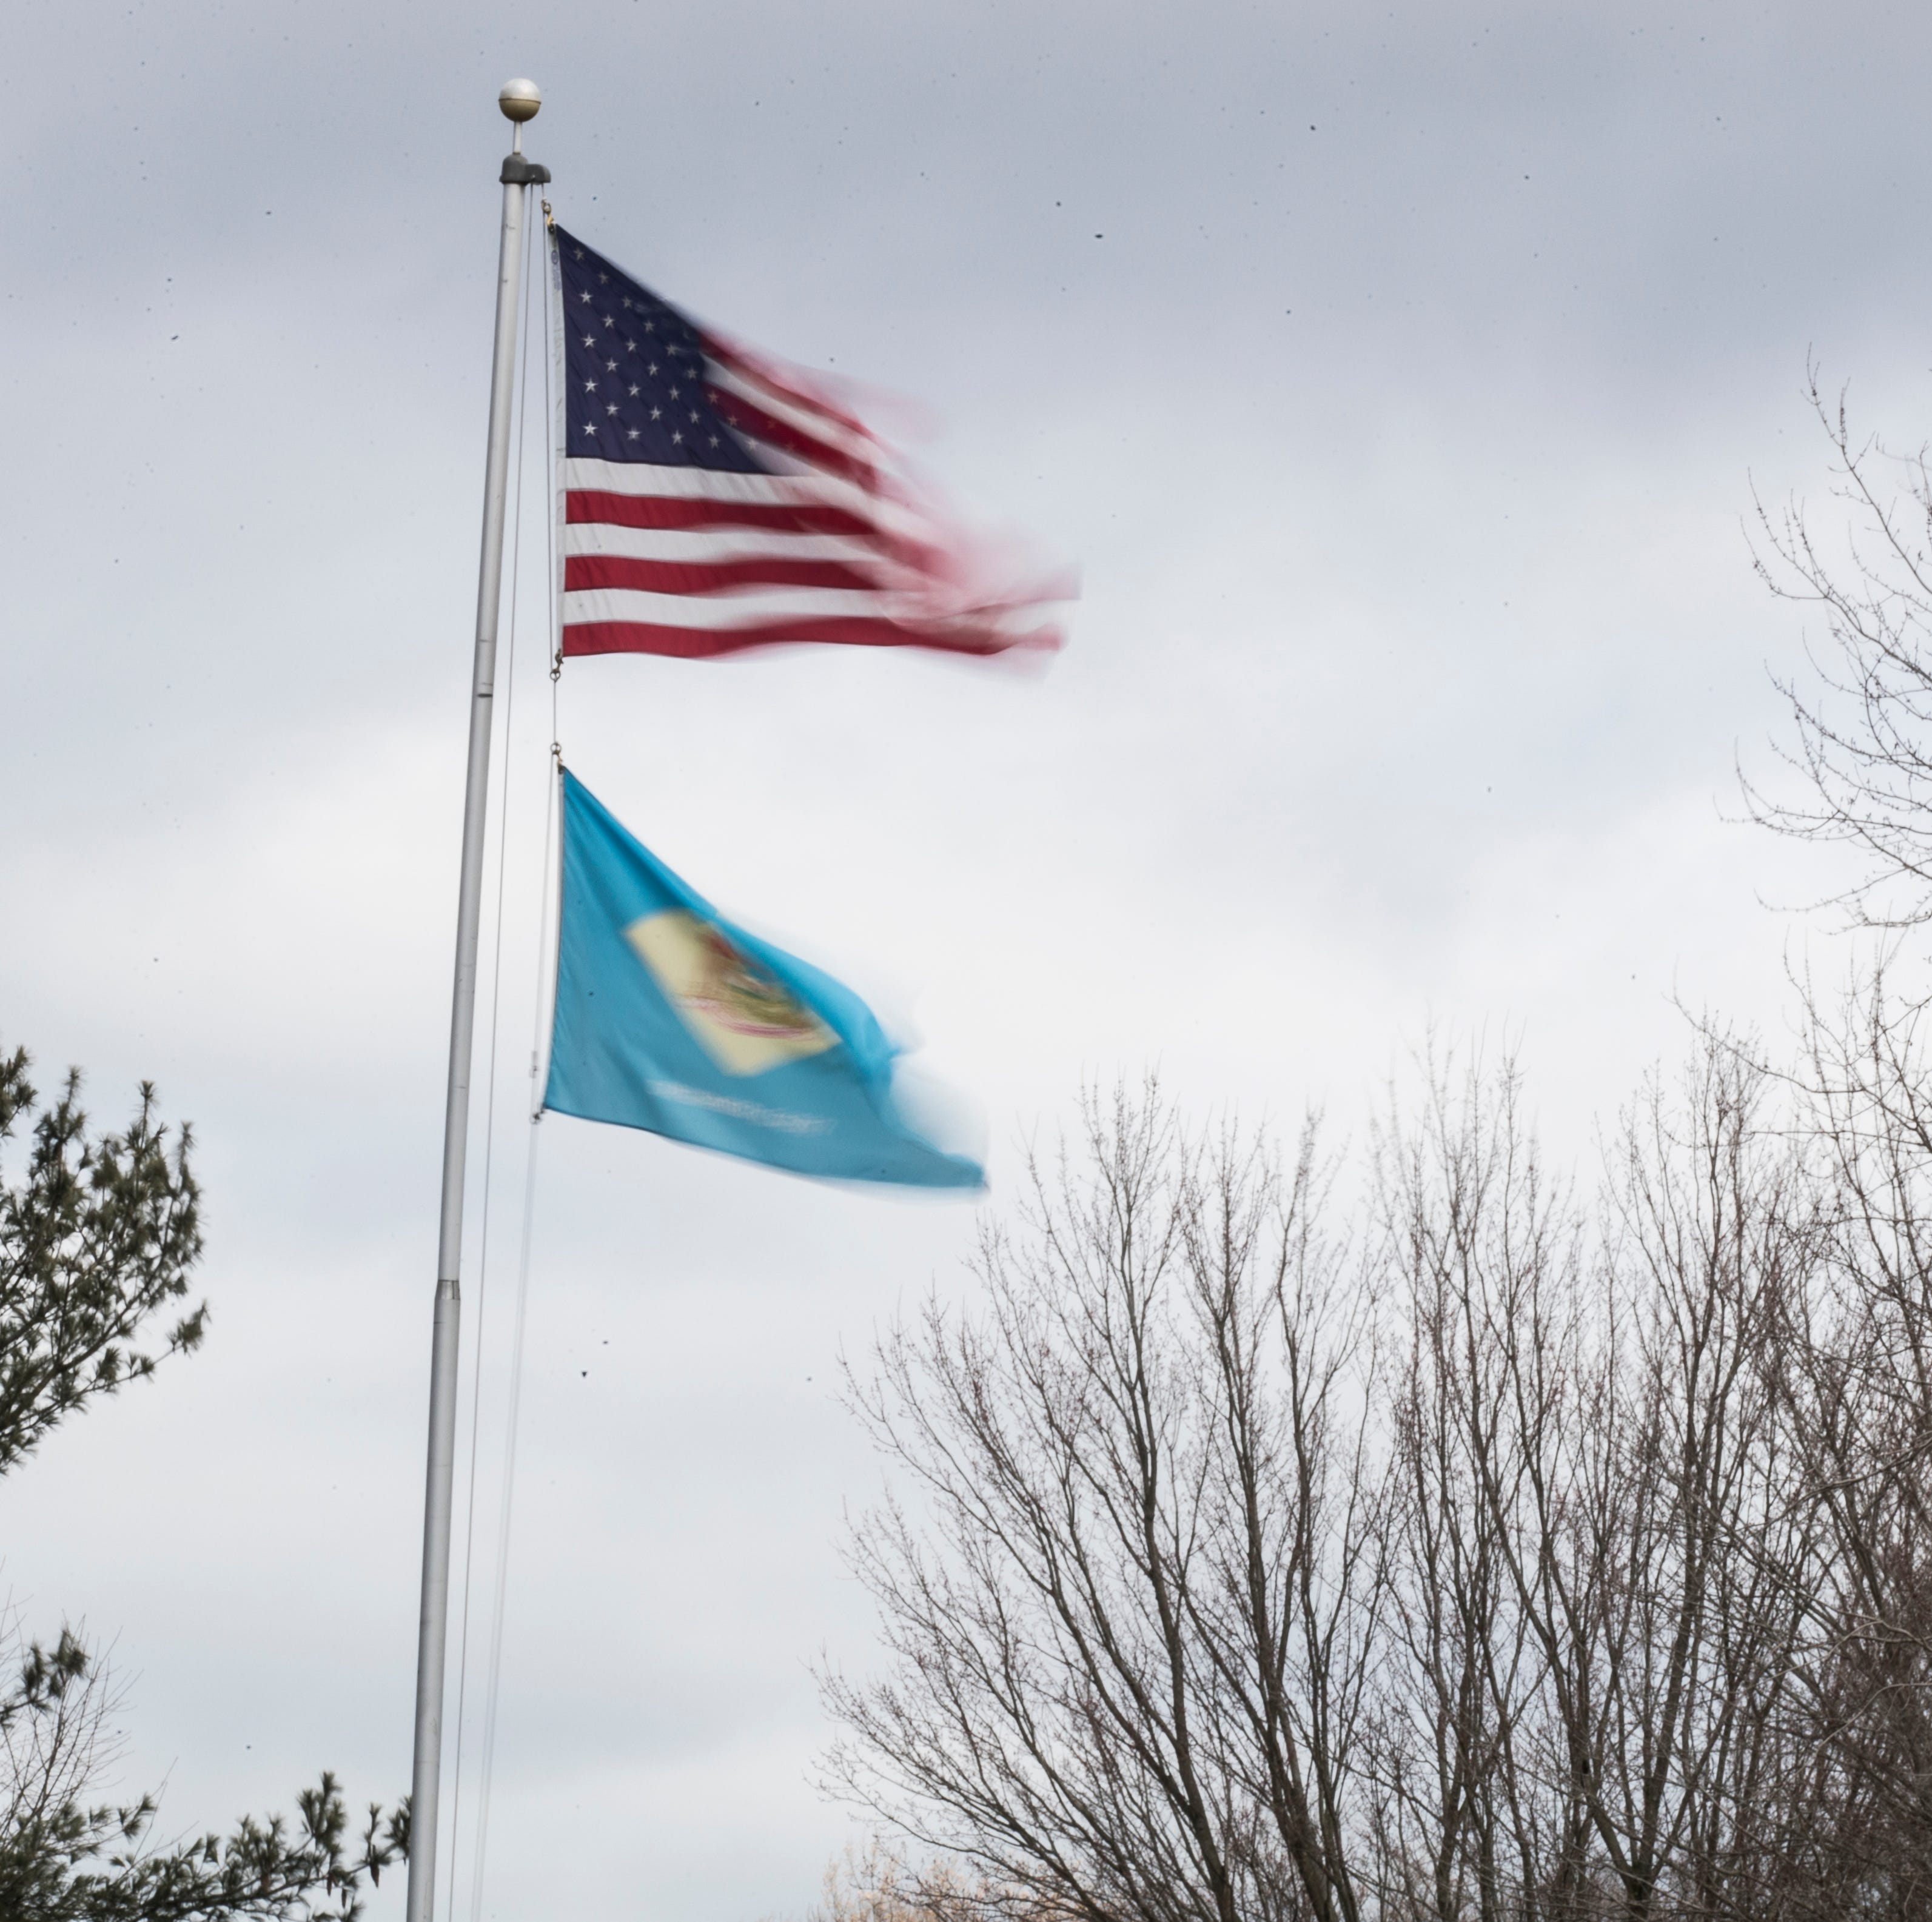 Weather forecast in Delaware: What you need to know about wind gusts, dropping temperatures